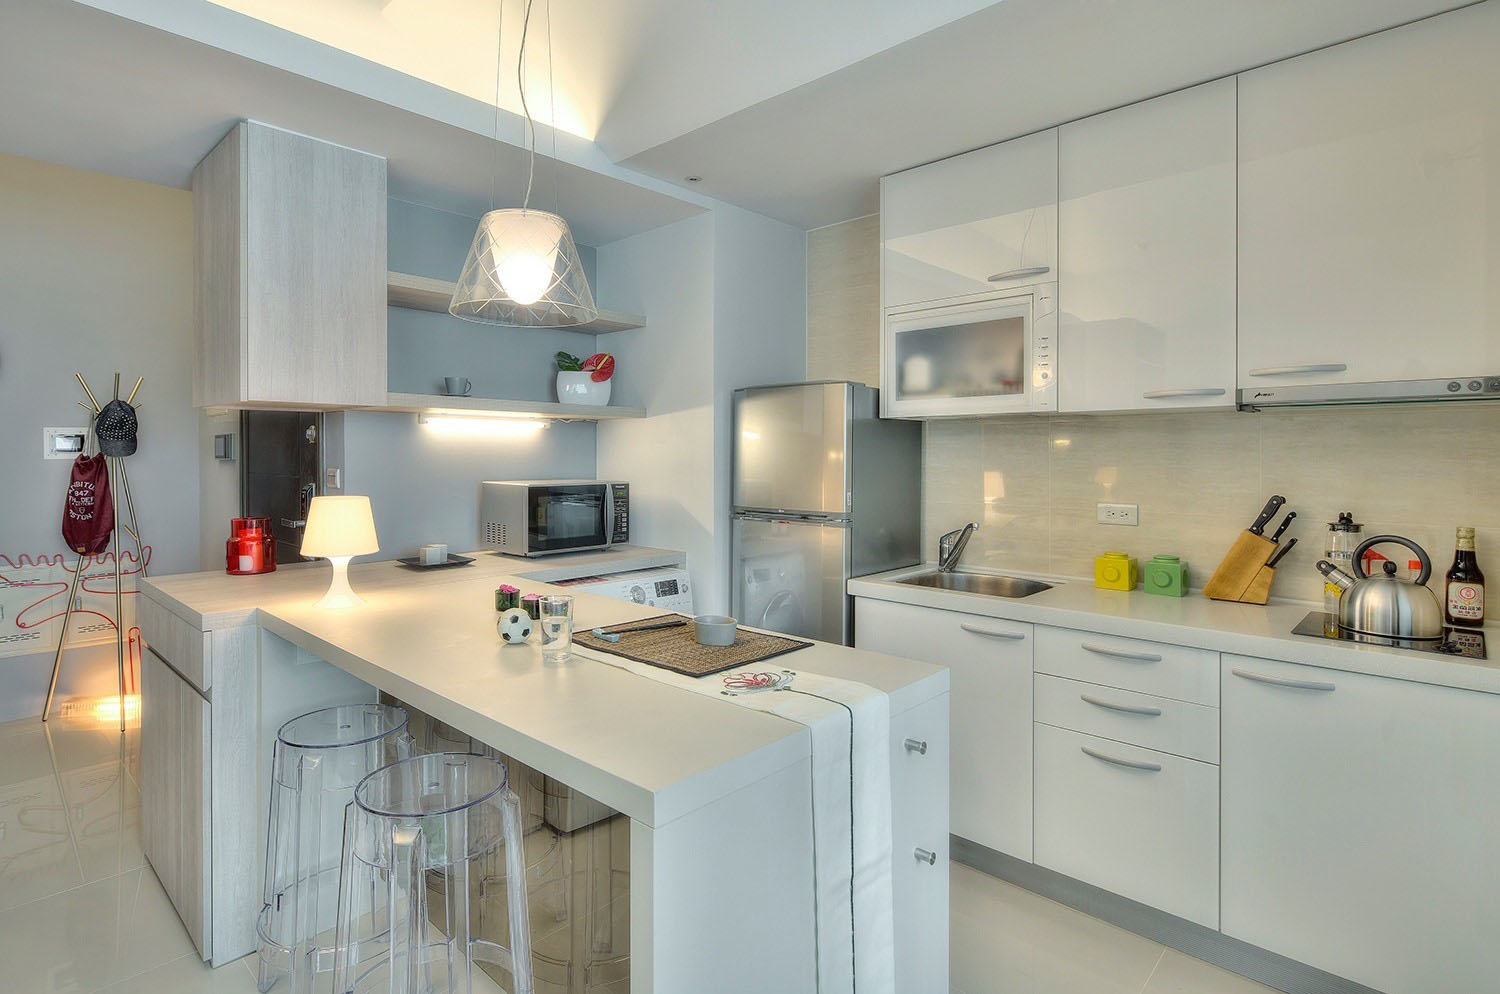 Taipei city Taiwan - Small kitchen design ideas